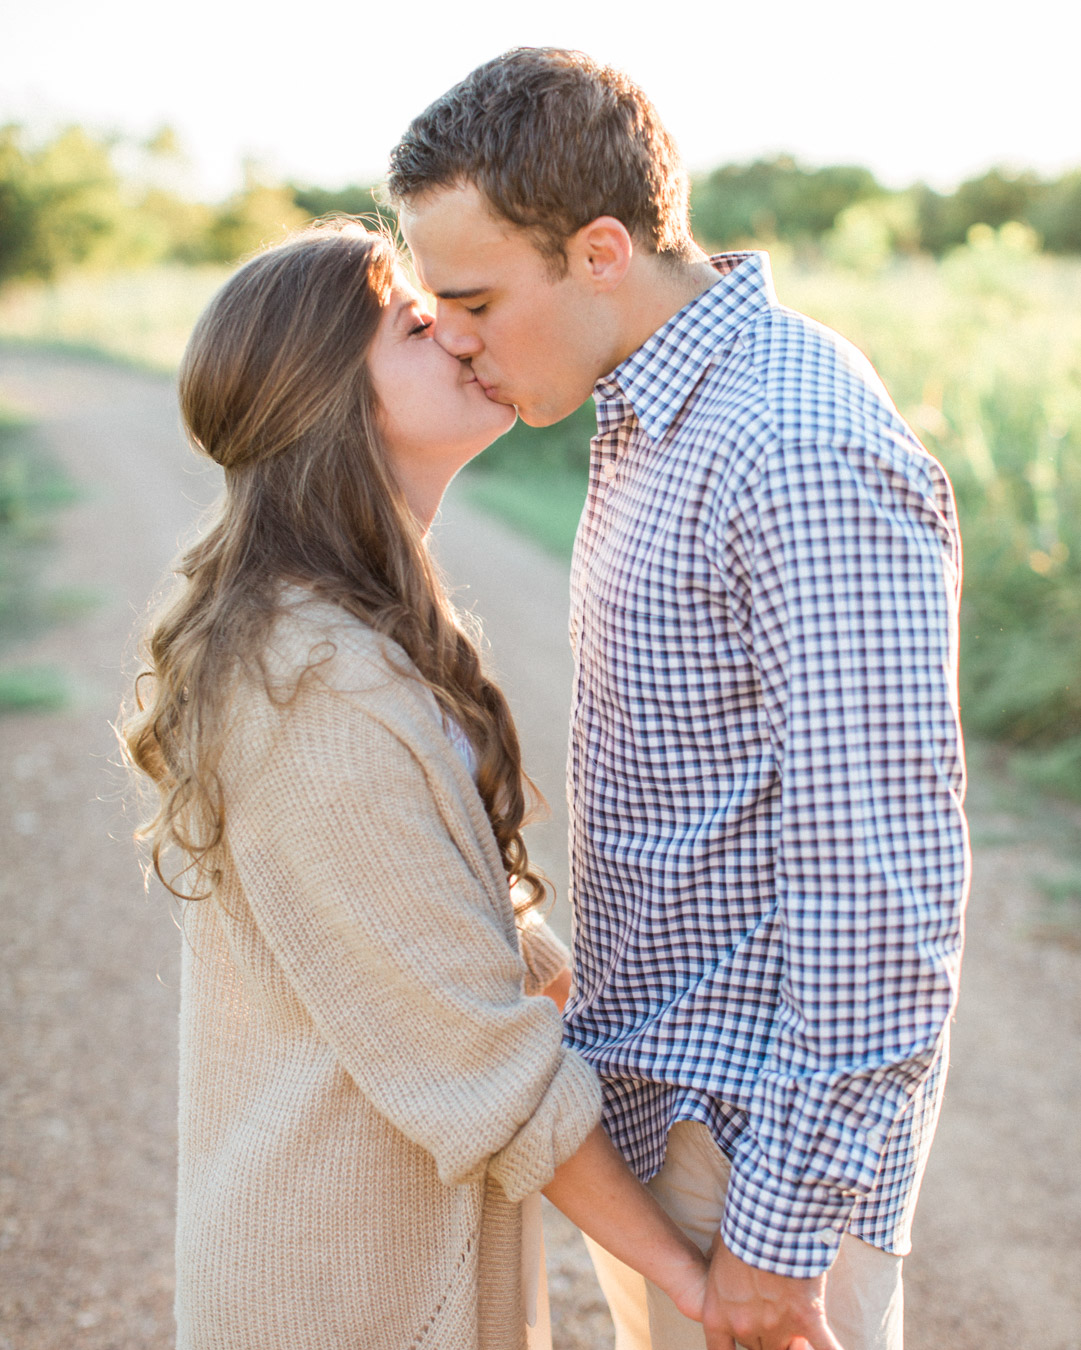 Fort Worth wedding photographer, bridal portraits, Dallas wedding photographer, Fort Worth photographer, Dallas photographer,  floral photographer, Fort Worth engagement photographer, Dallas engagement photographer, engagement pictures